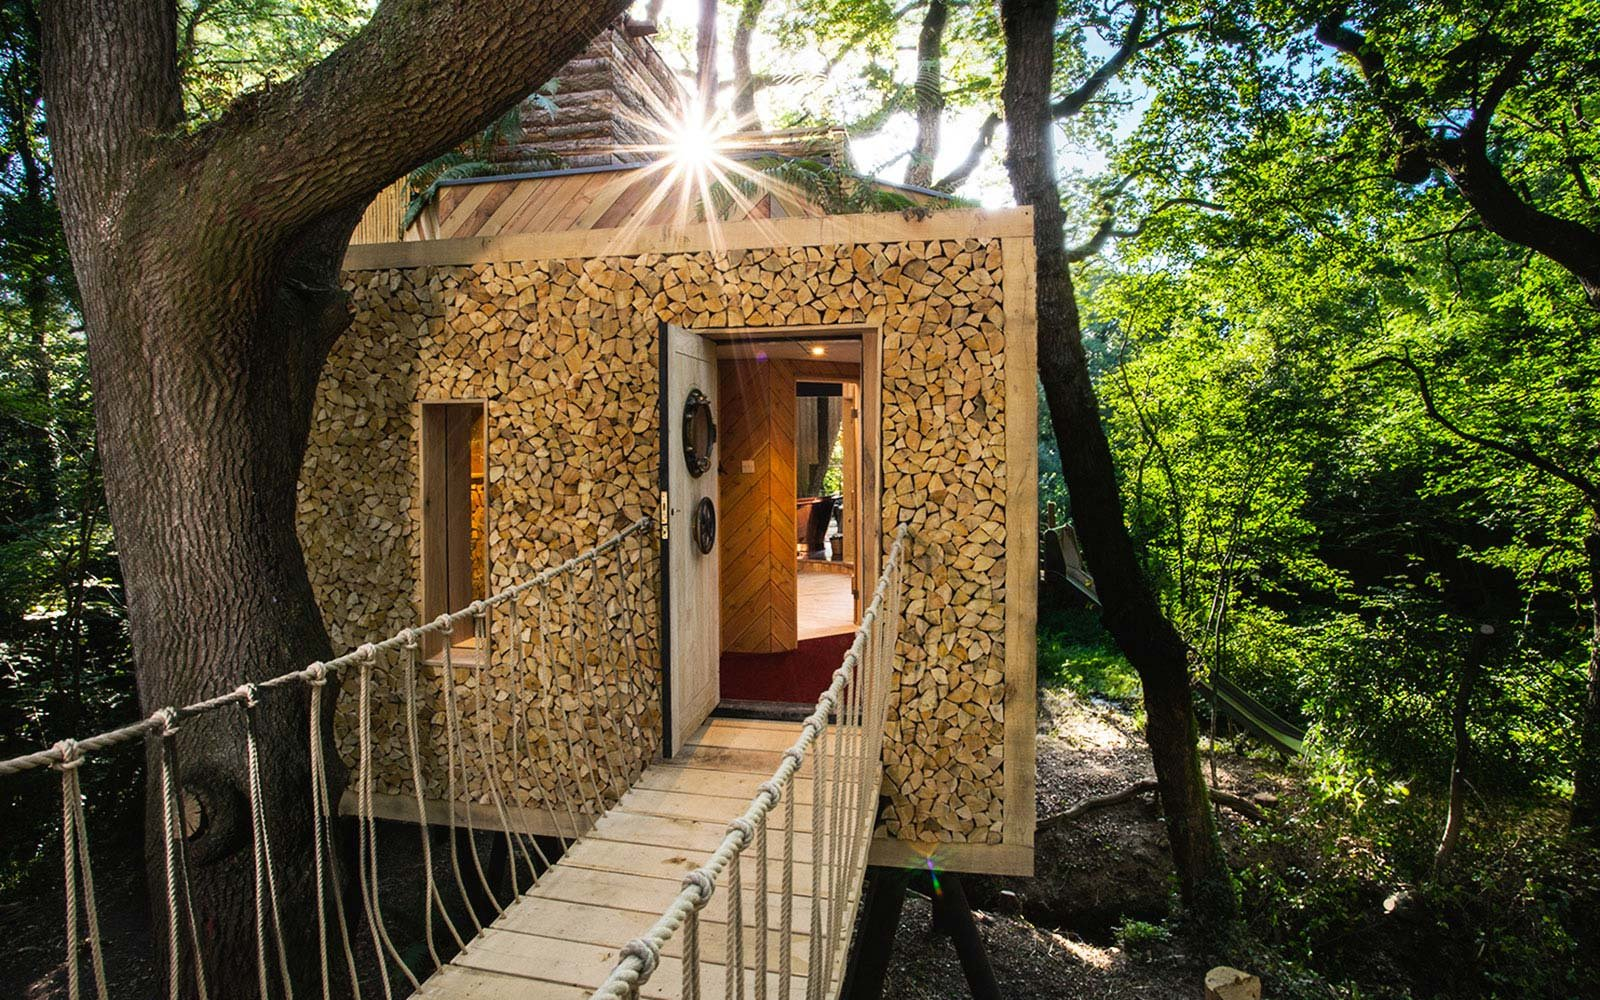 Treehouse how to stay in england's most luxurious treehouse | travel + leisure